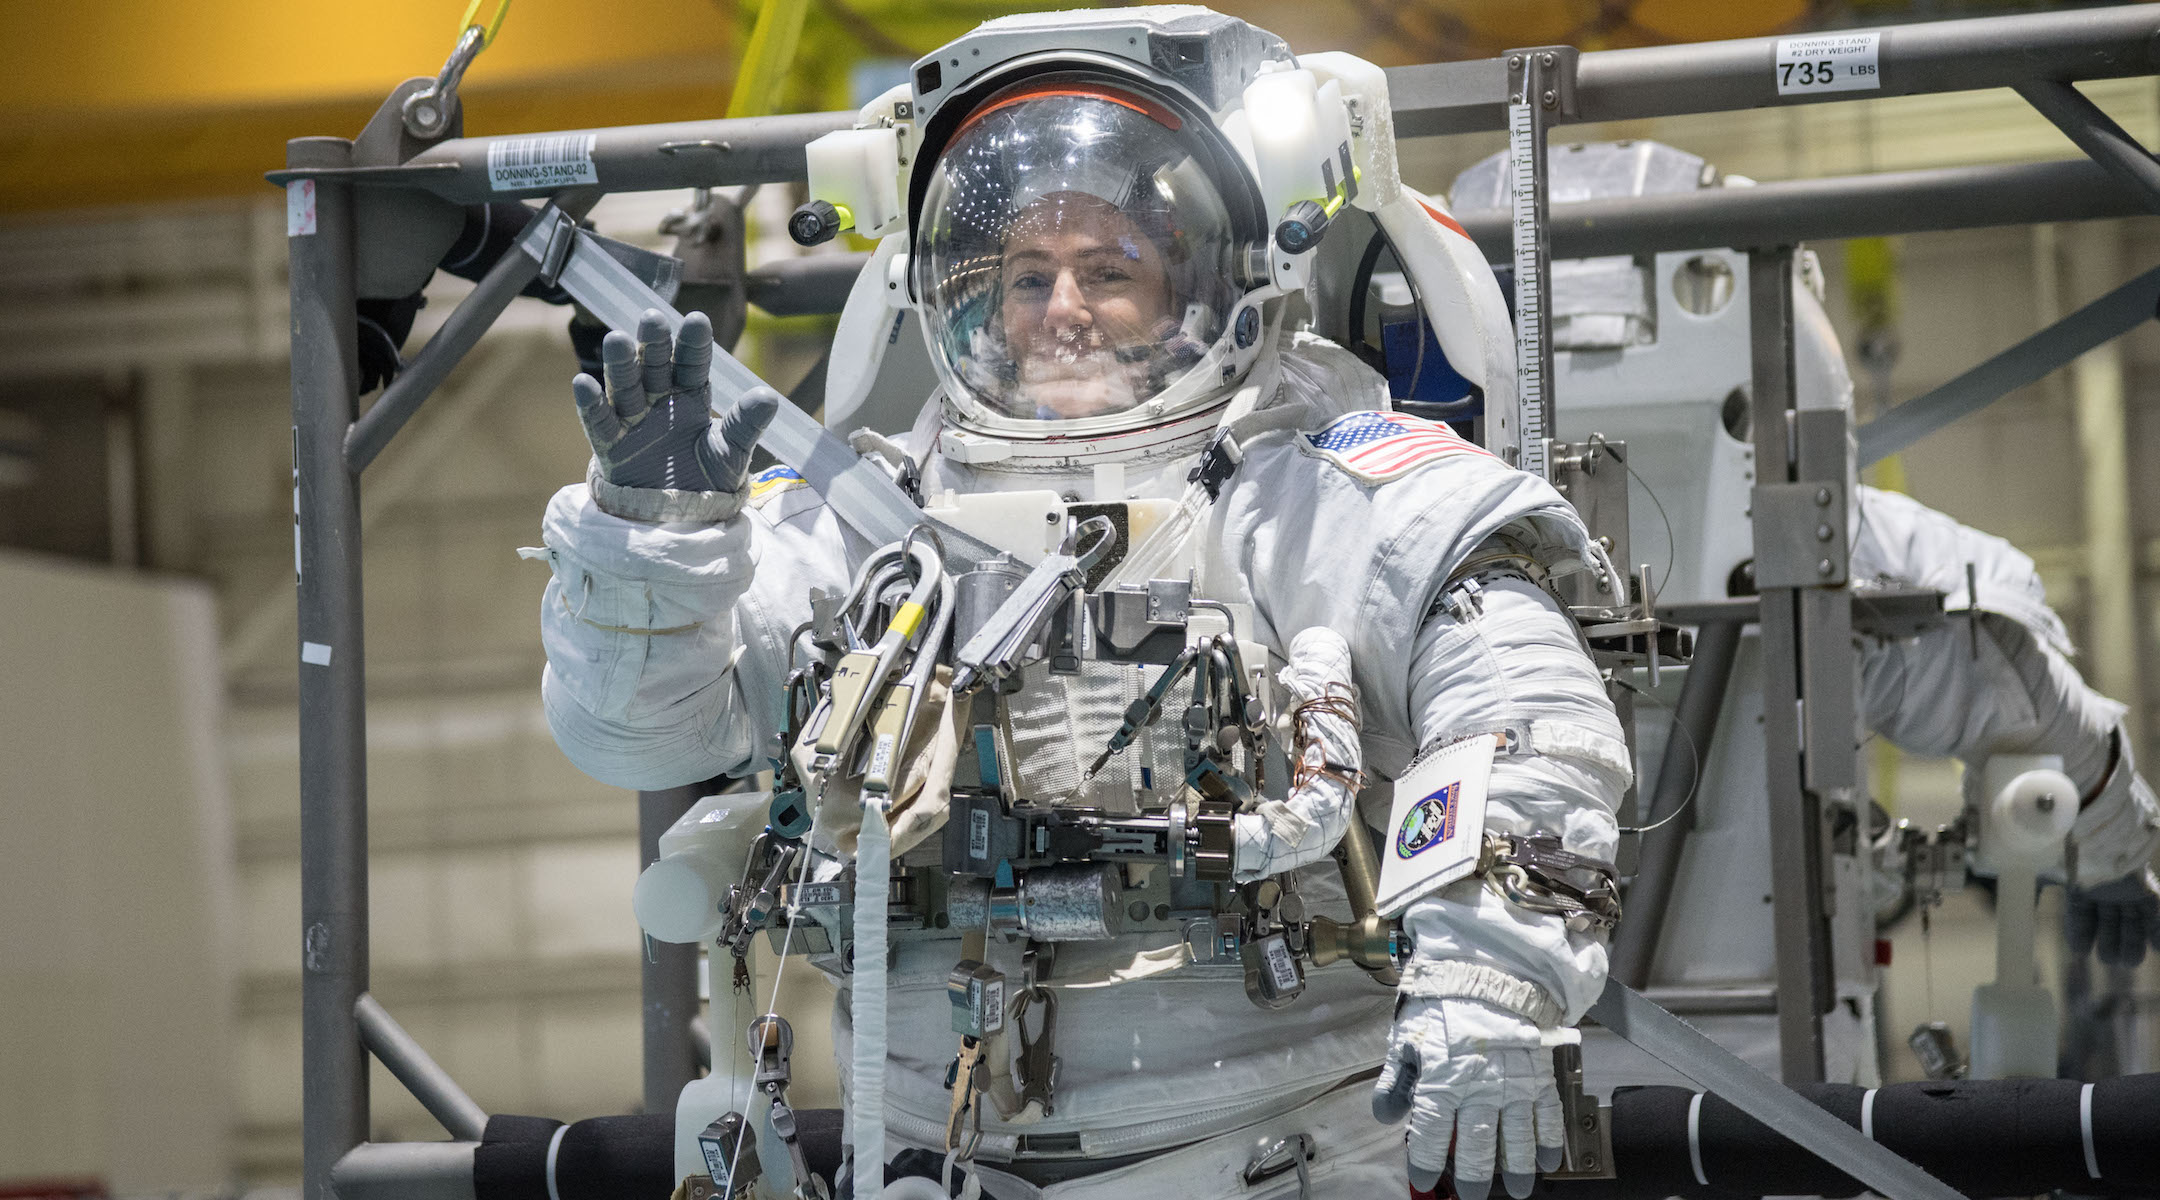 Jewish astronaut Jessica Meir wants to be the first woman on the moon